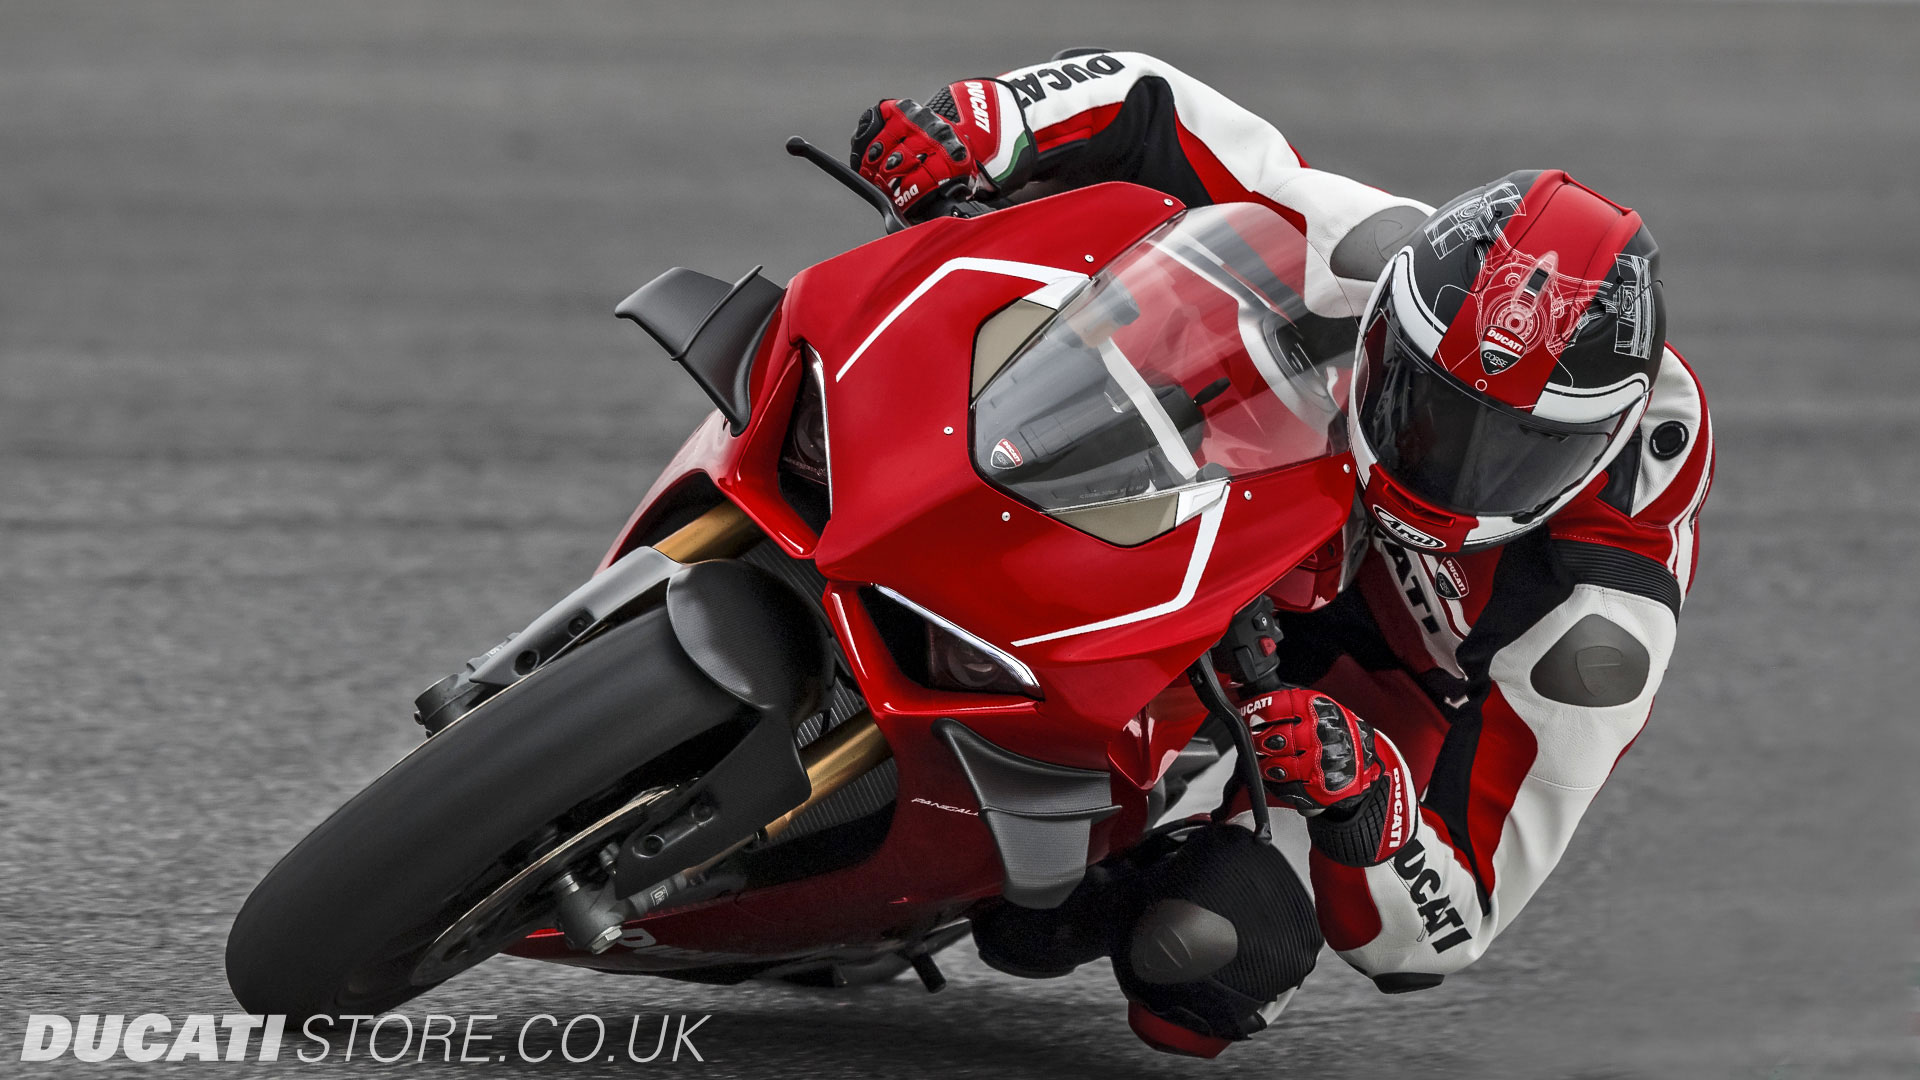 Ducati Panigale V4r For Sale Uk Ducati Manchester